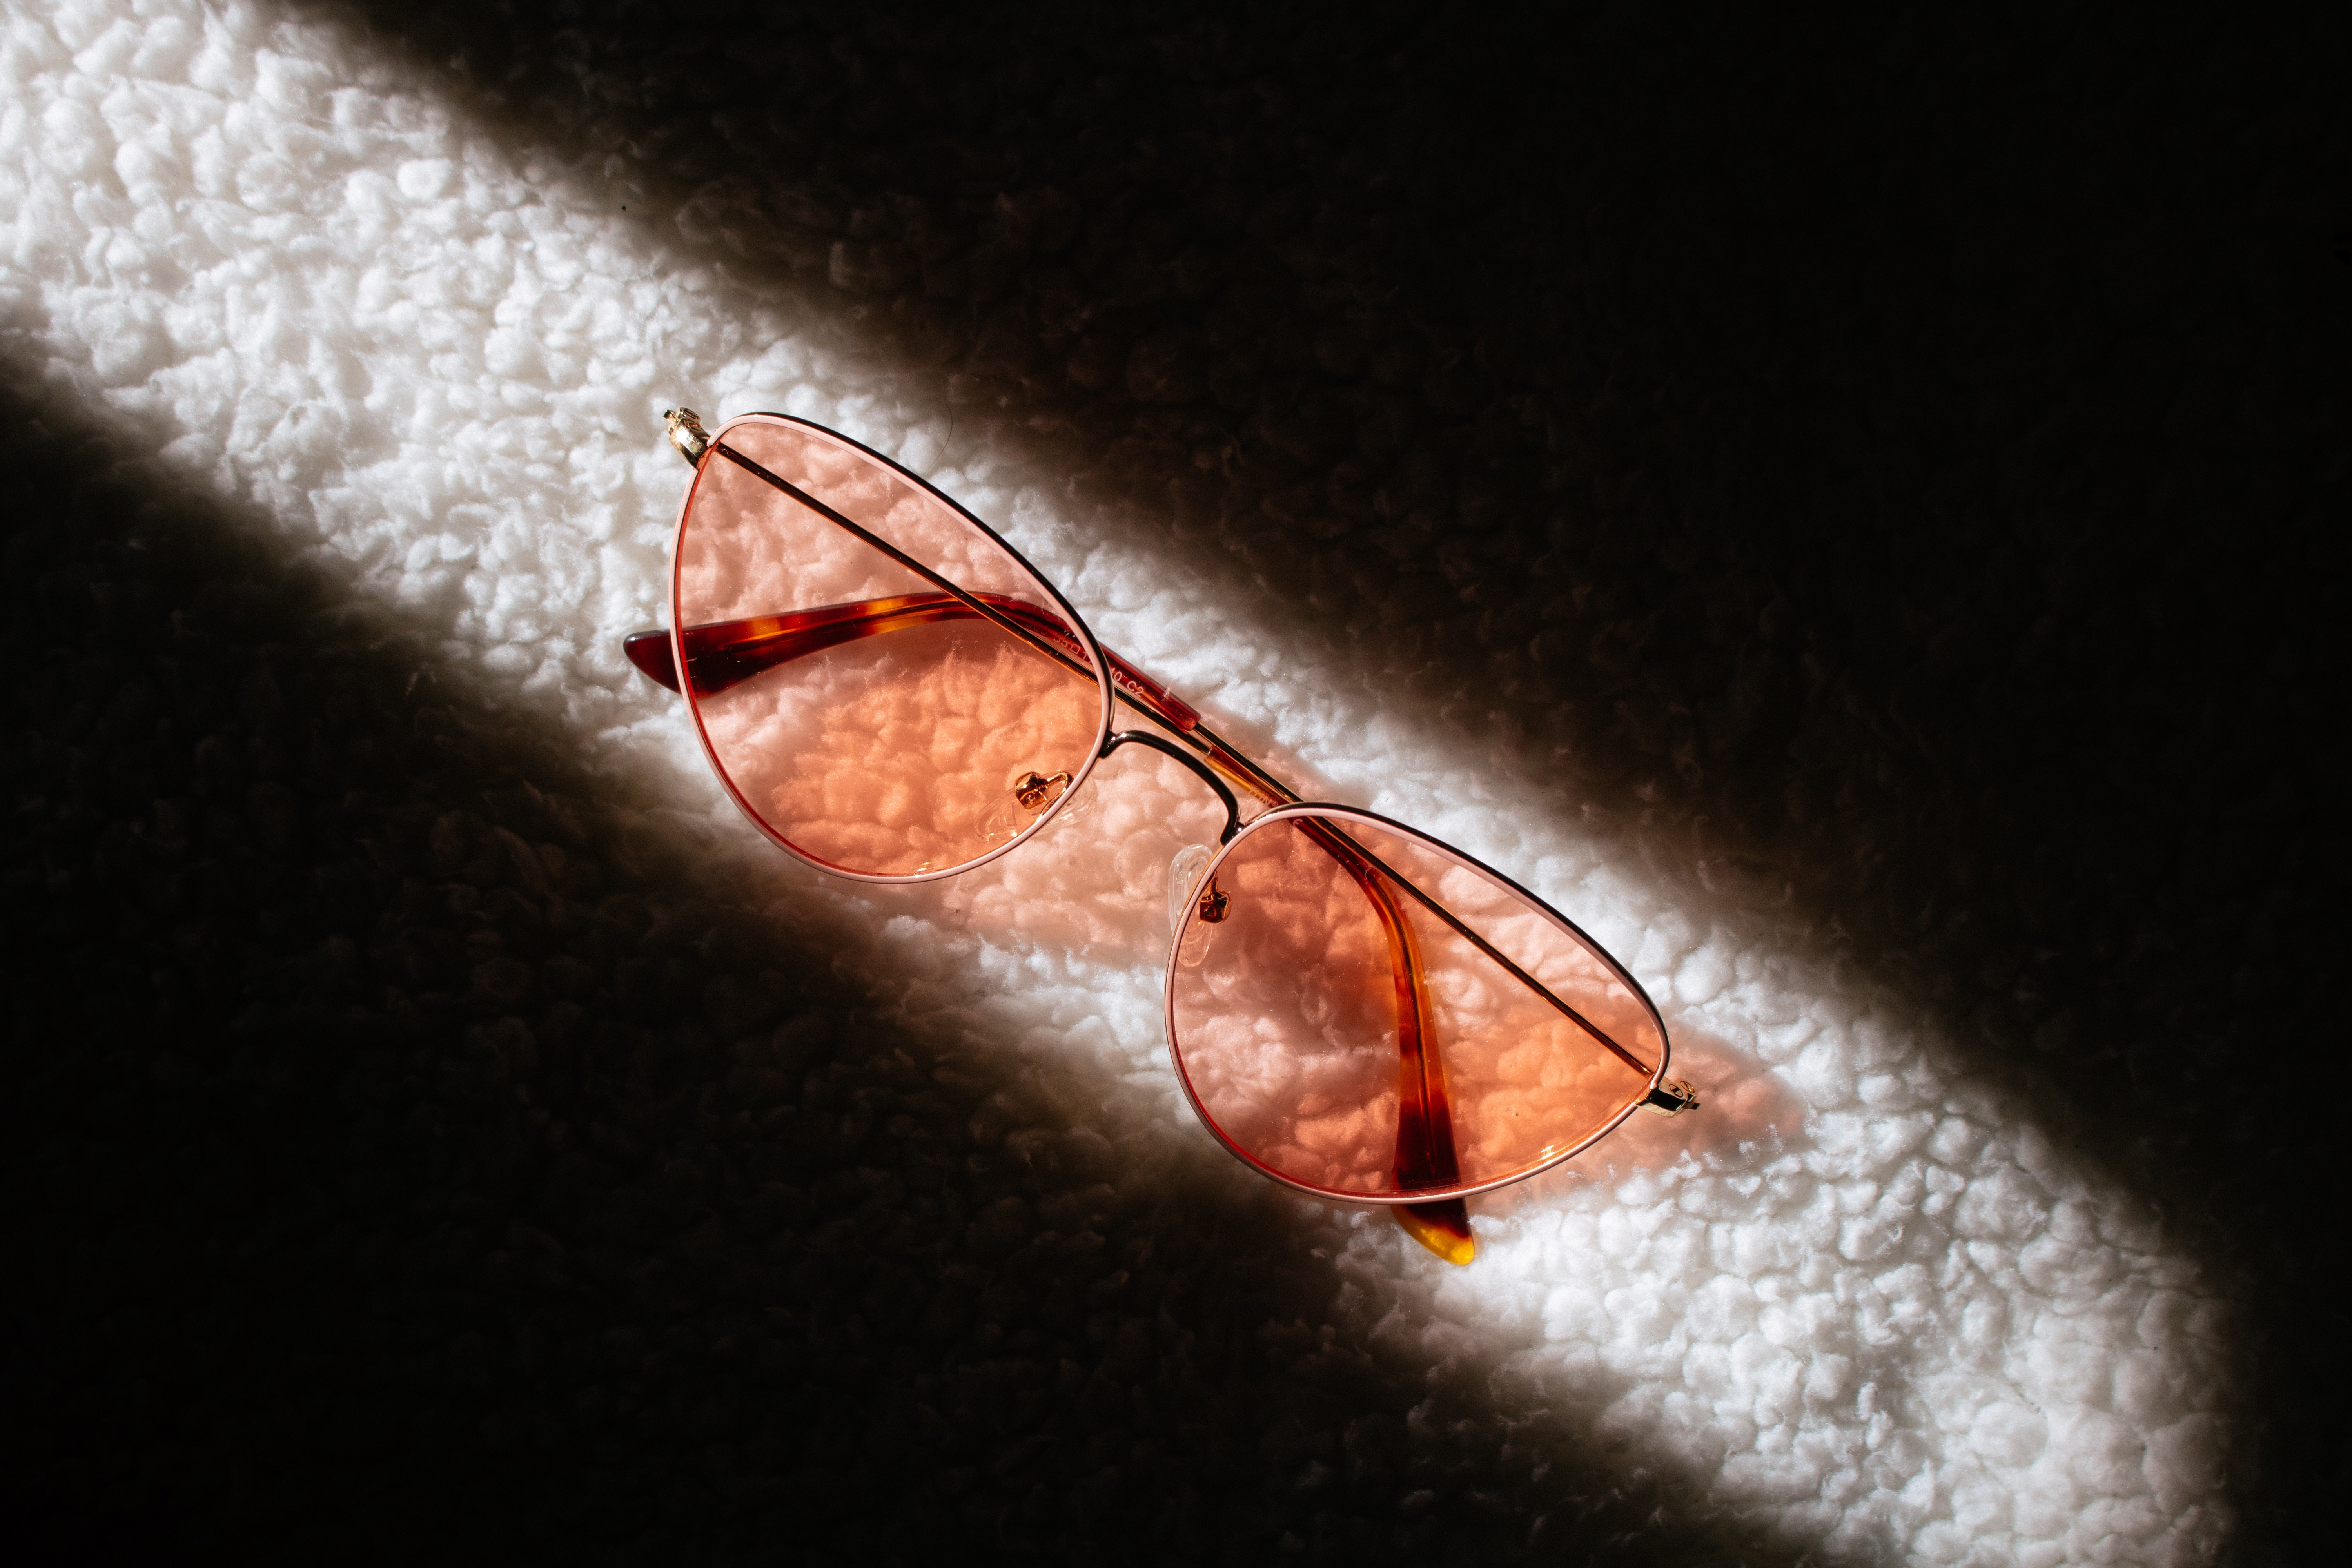 Glasses lying on a white fluffy carpet